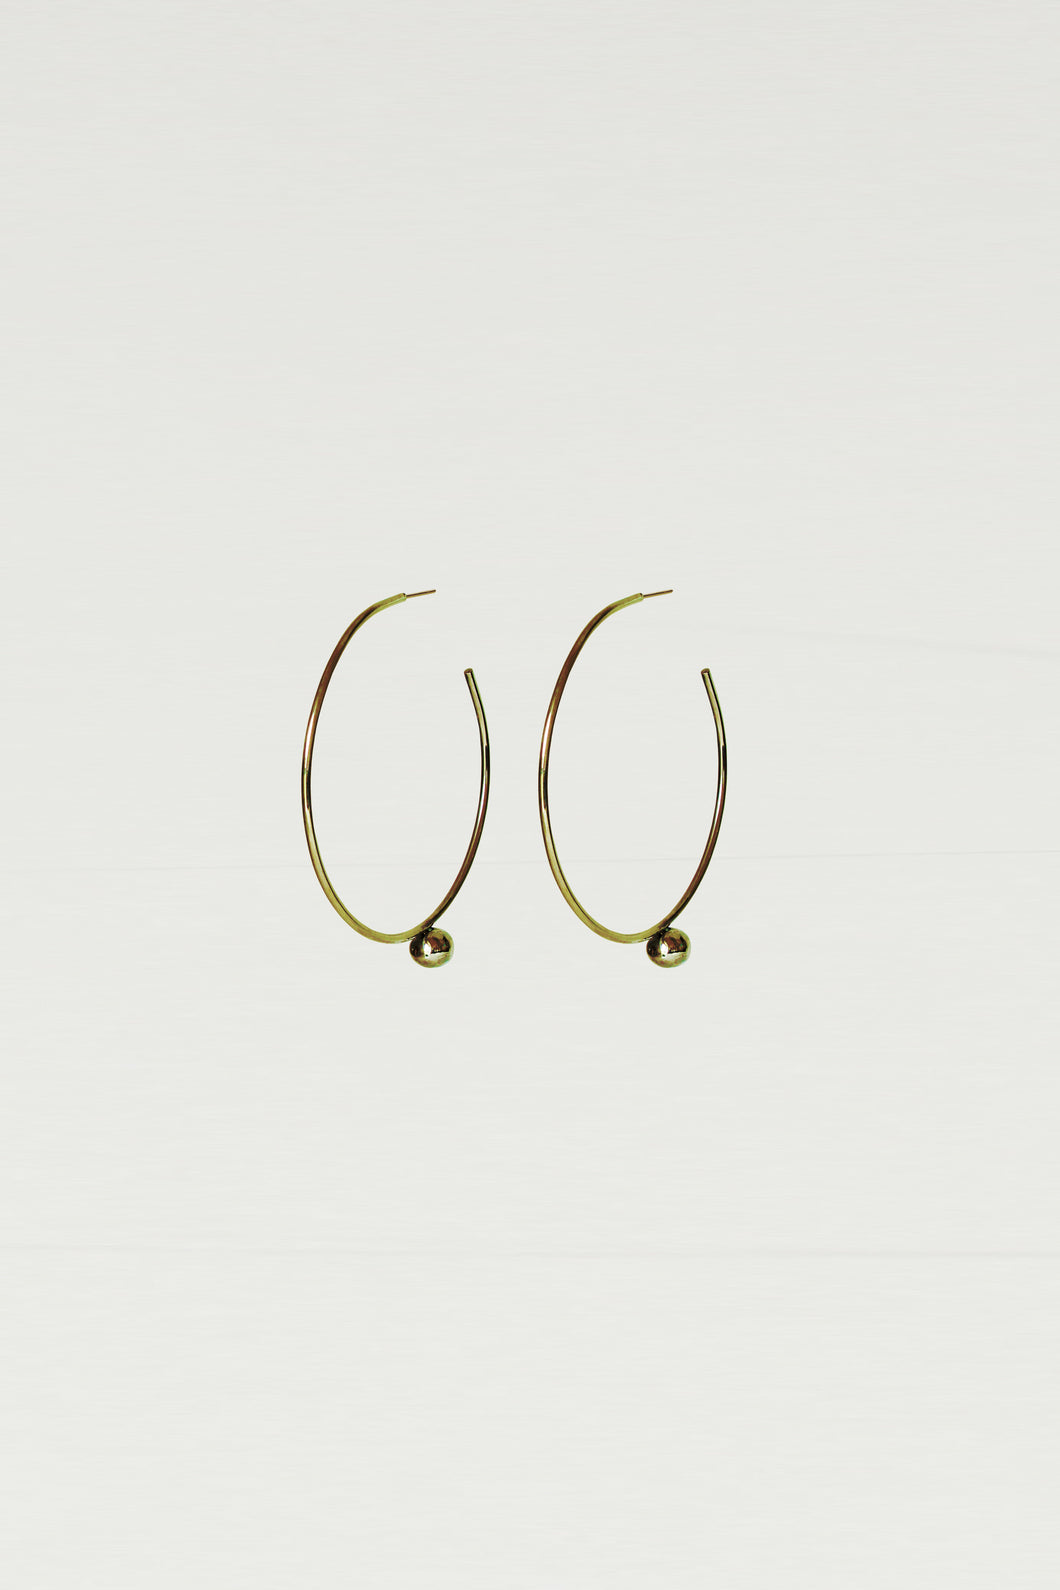 Series 6, earring 2, gold